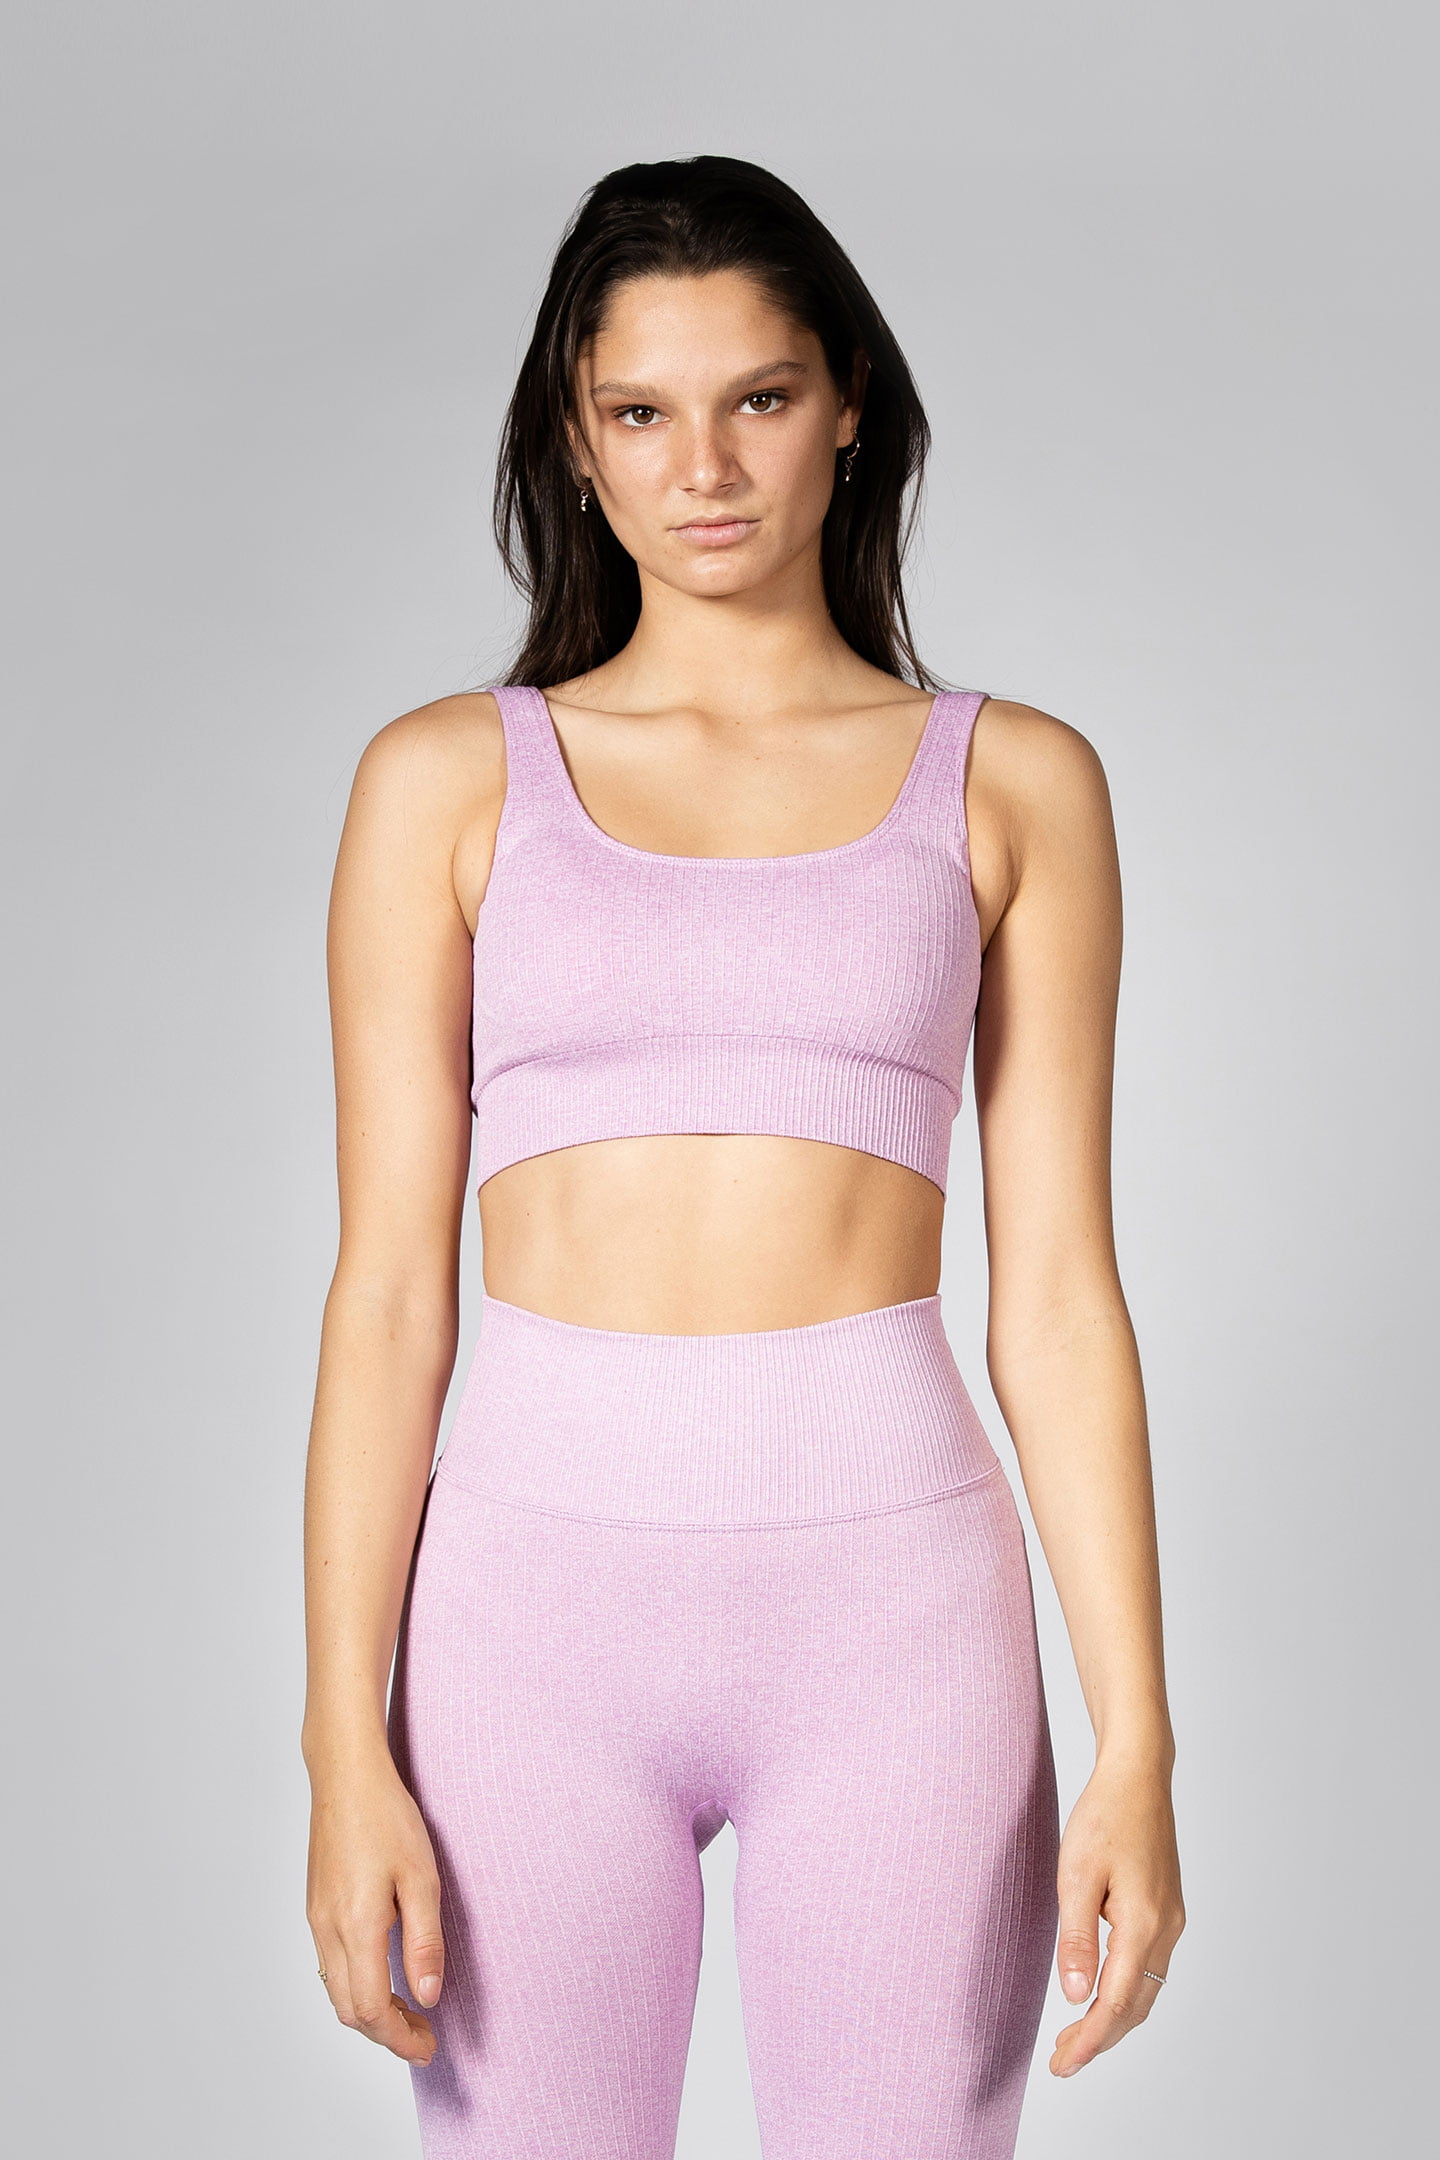 professional model posing in seamless ribbed sports bra in lilac colour